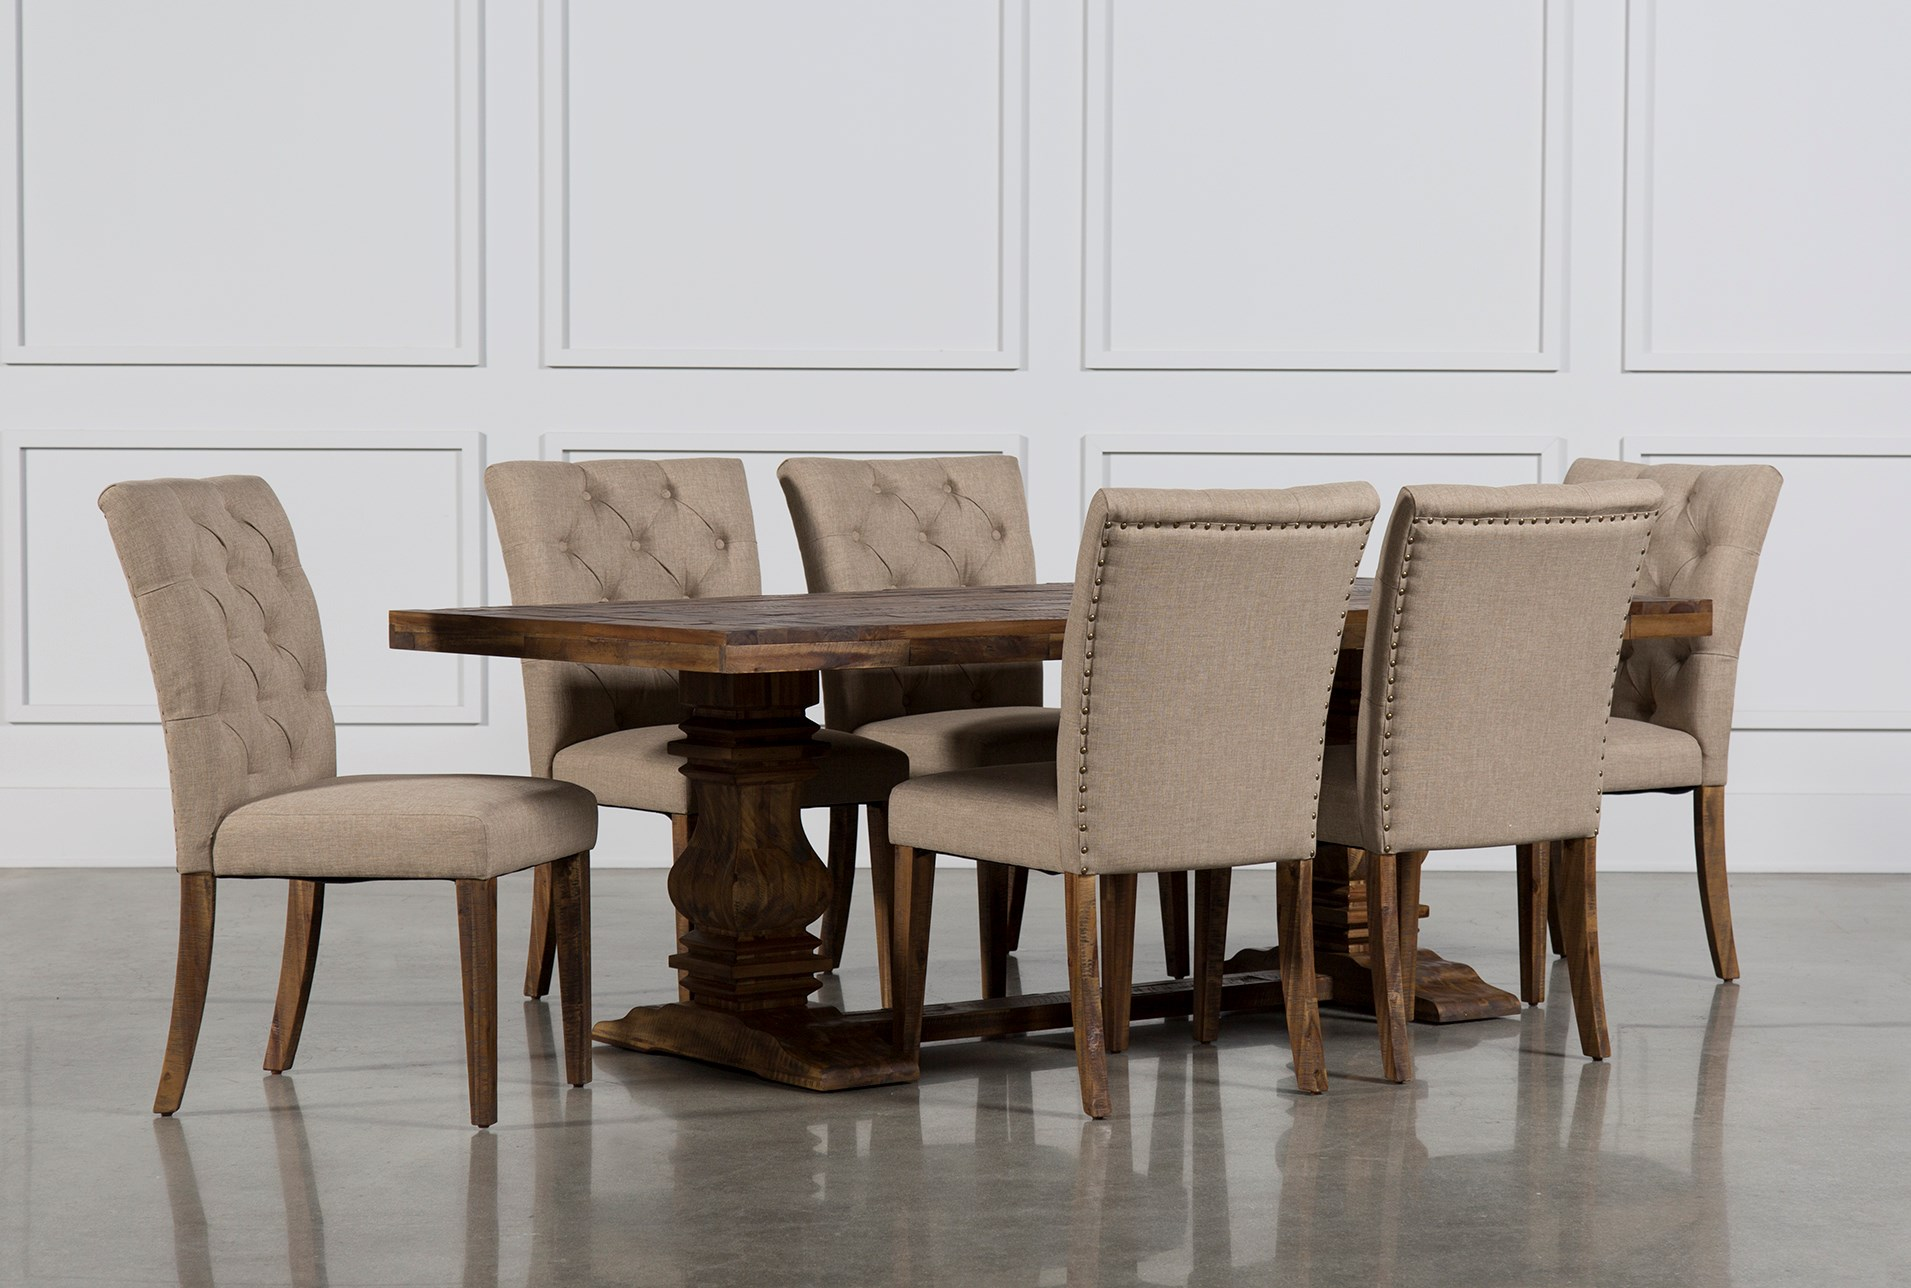 Partridge 7 Piece Dining Set Qty 1 Has Been Successfully Added To Your Cart